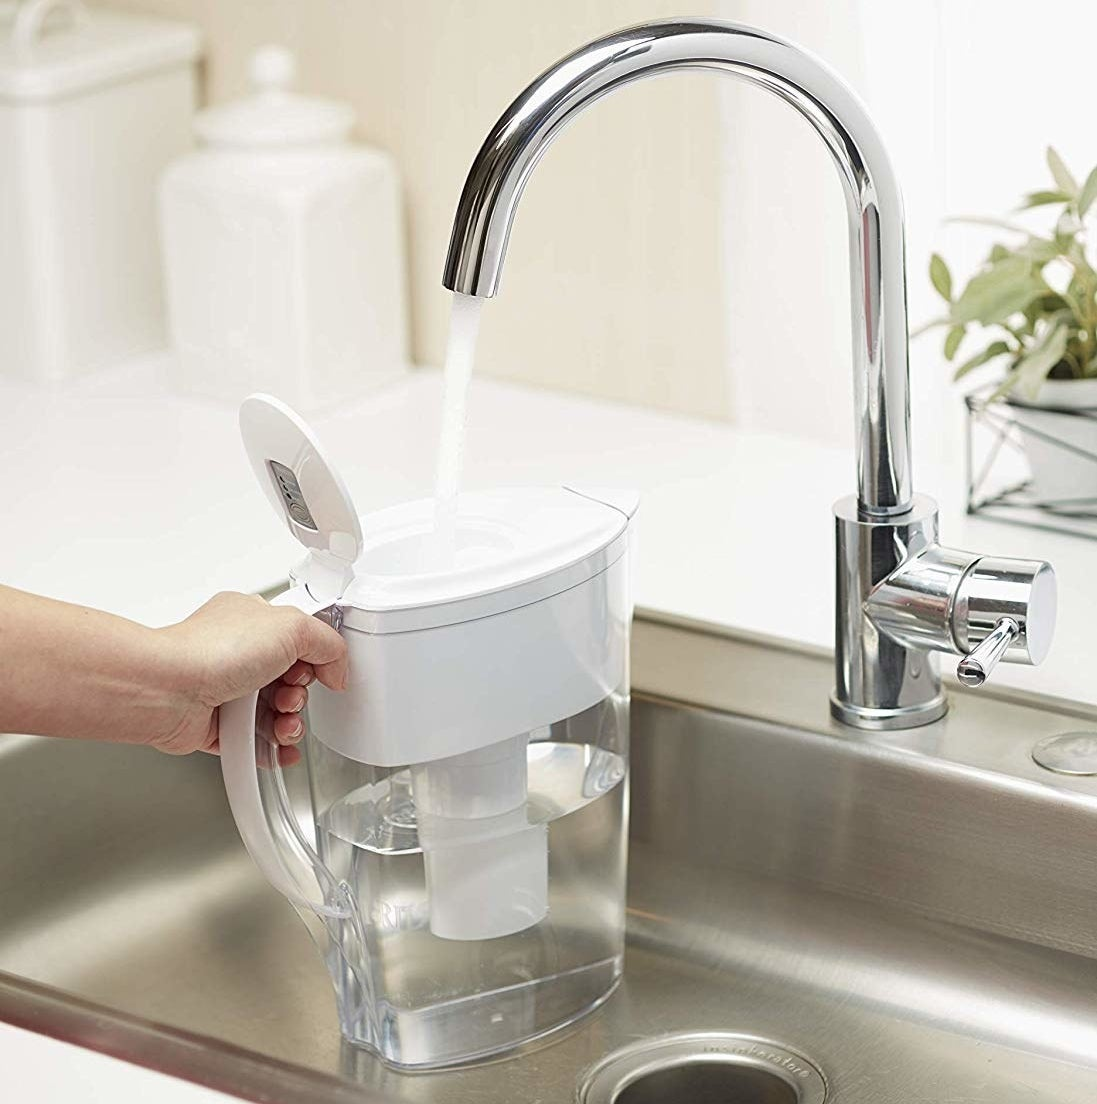 A person filling up their Brita picture with water